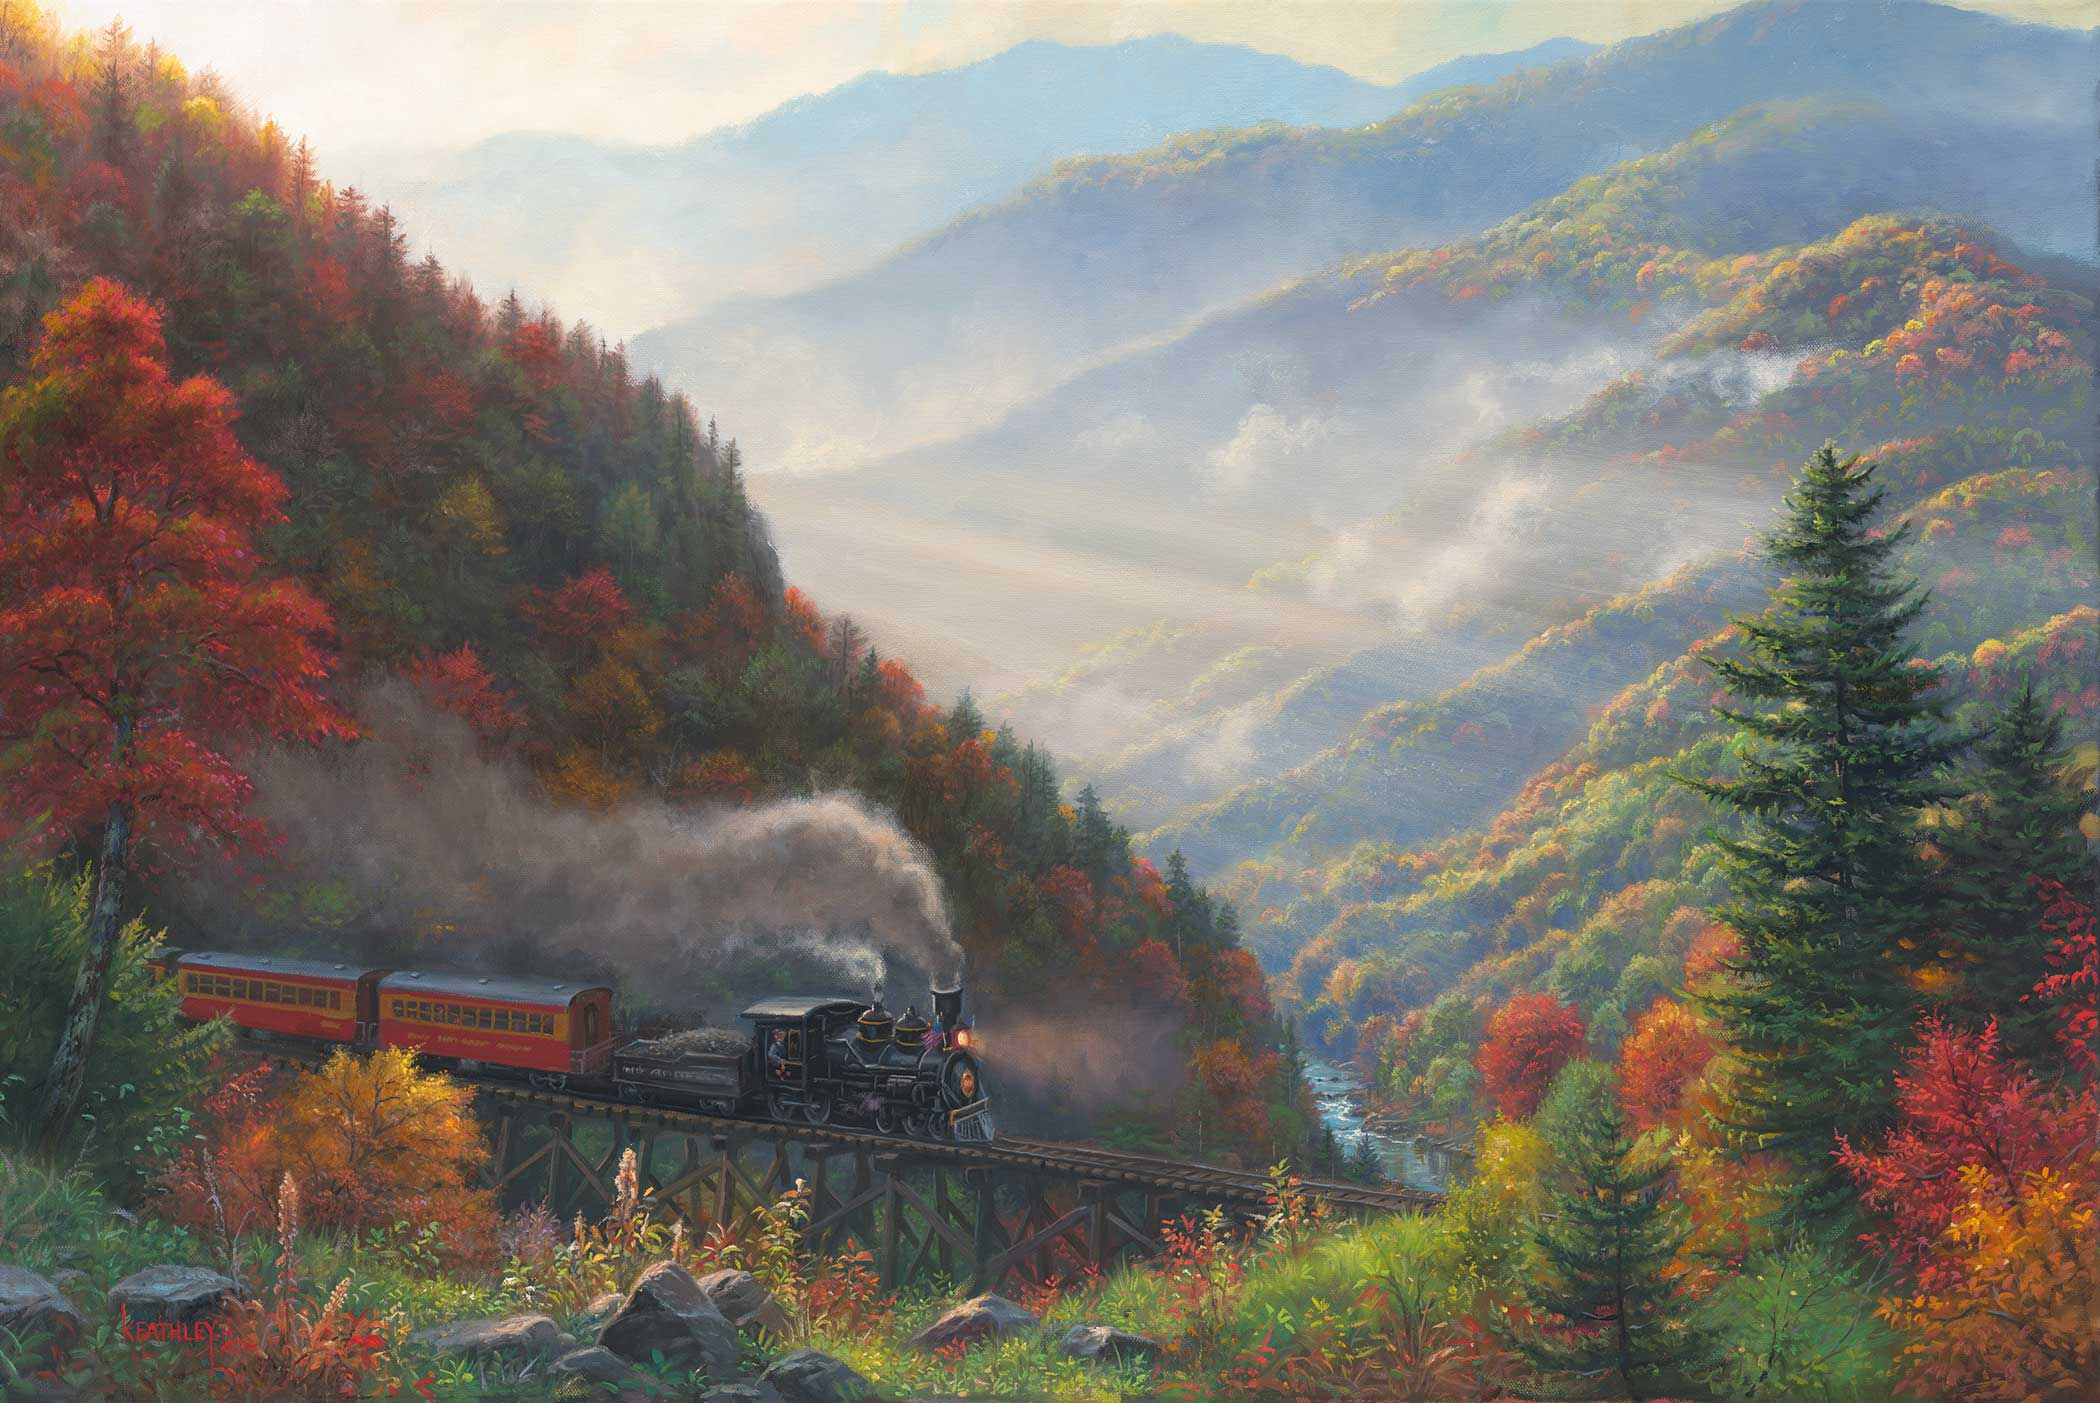 Great Smoky Mountain Railraod MK 07610 1 Cezanne Edit Flat Joomla